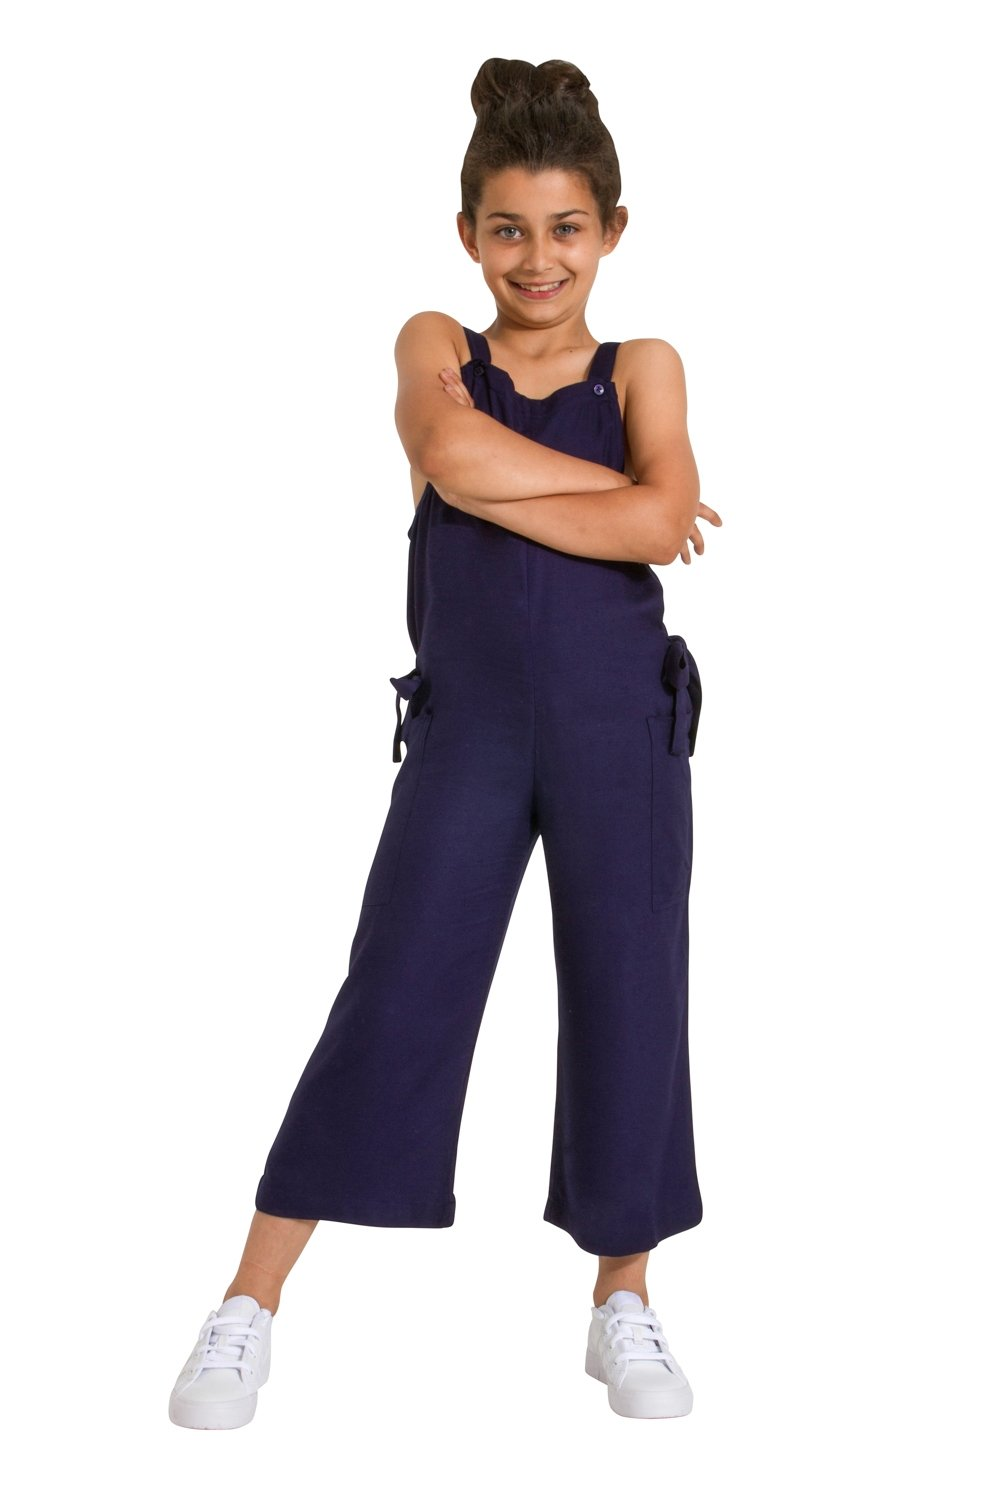 Sleeveless Cropped Jumpsuit for Girls - Blue Lightweight Playsuit Age 3-12 Wash Clothing Company